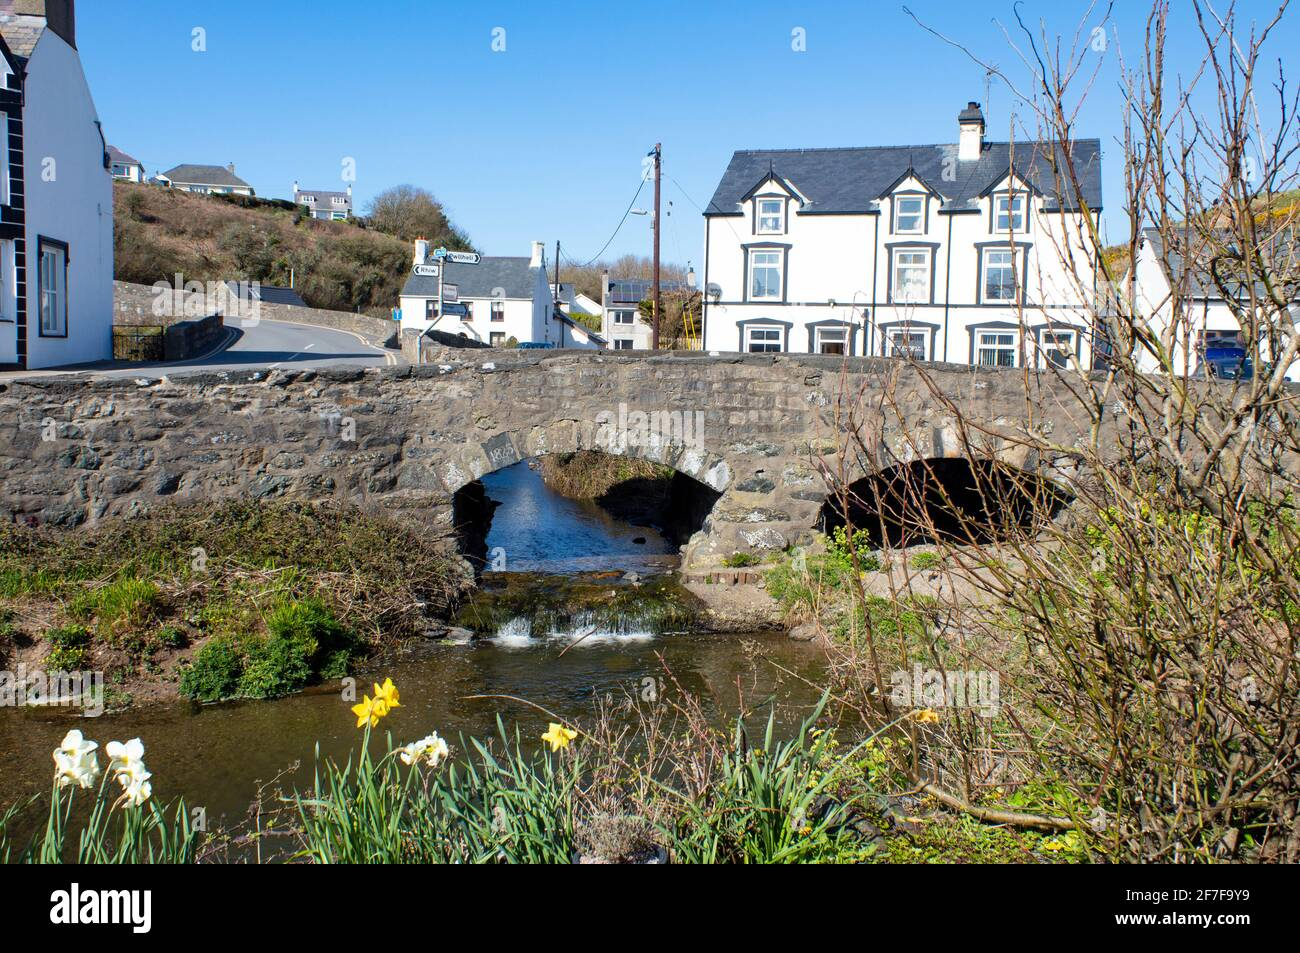 Aberdaron village, Wales. Landscape with small stone bridge over a stream.  Charming small seaside resort. Stock Photo